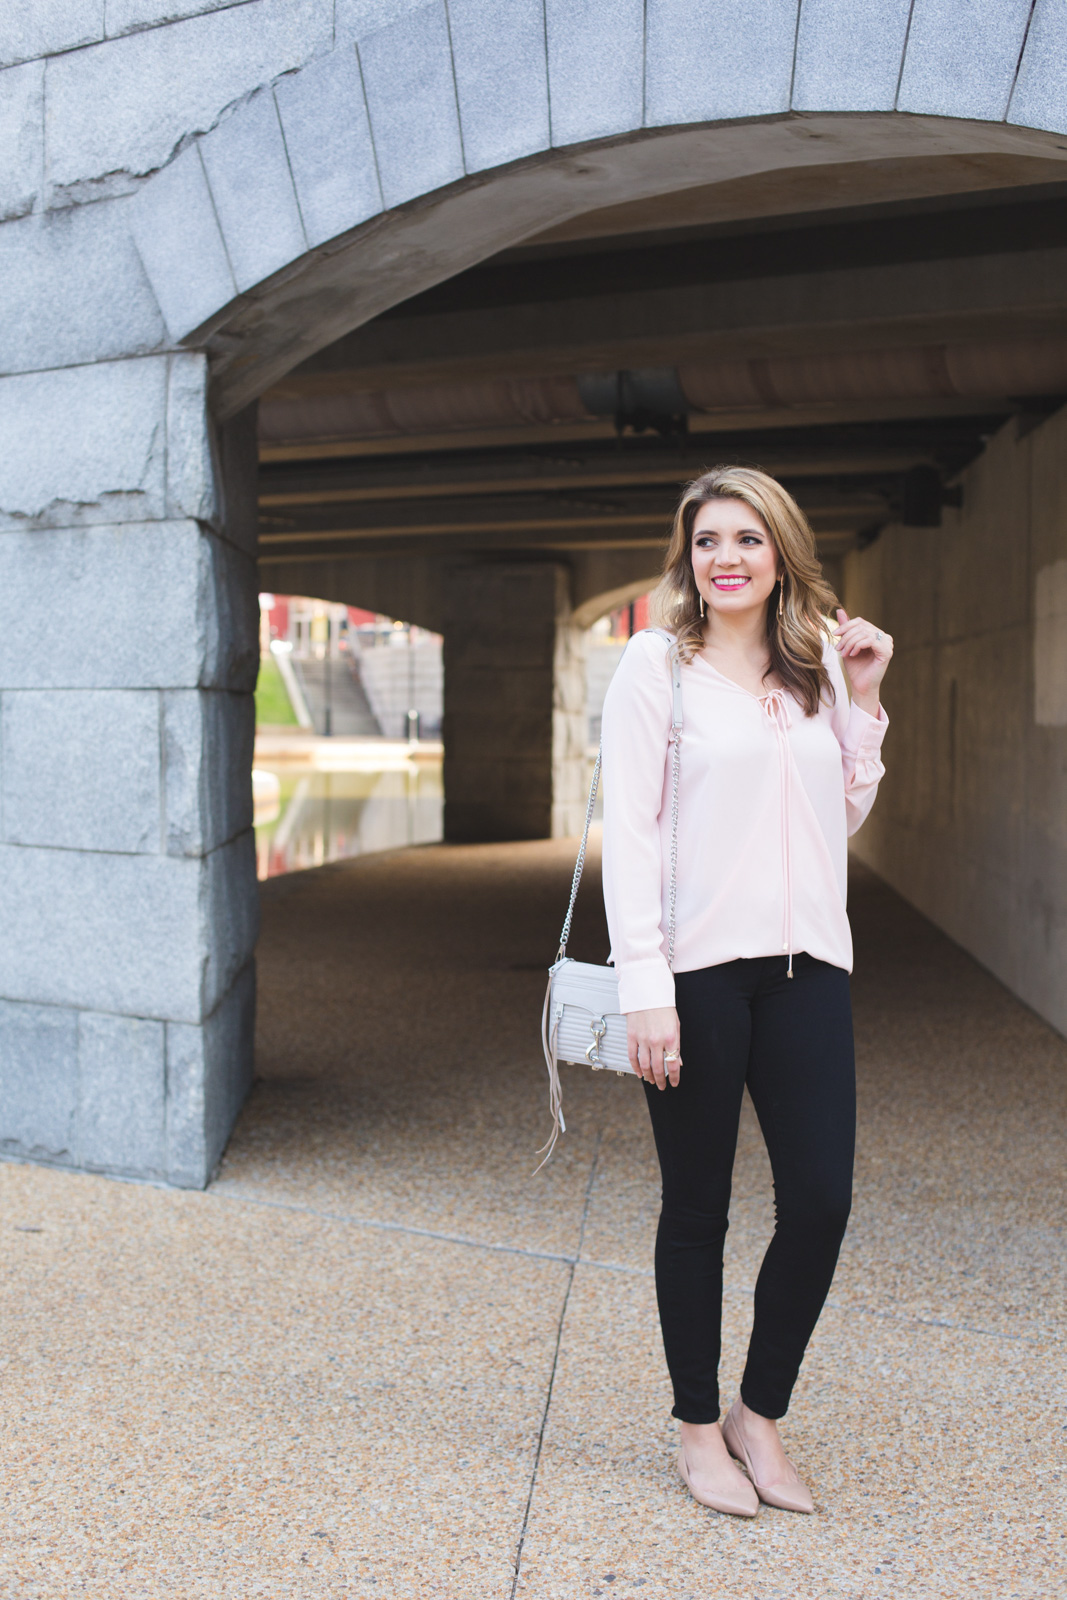 blush pink wrap blouse with black jeans and nude flats. | Click through for more Spring outfit inspiration or to shop this look! www.bylaurenm.com